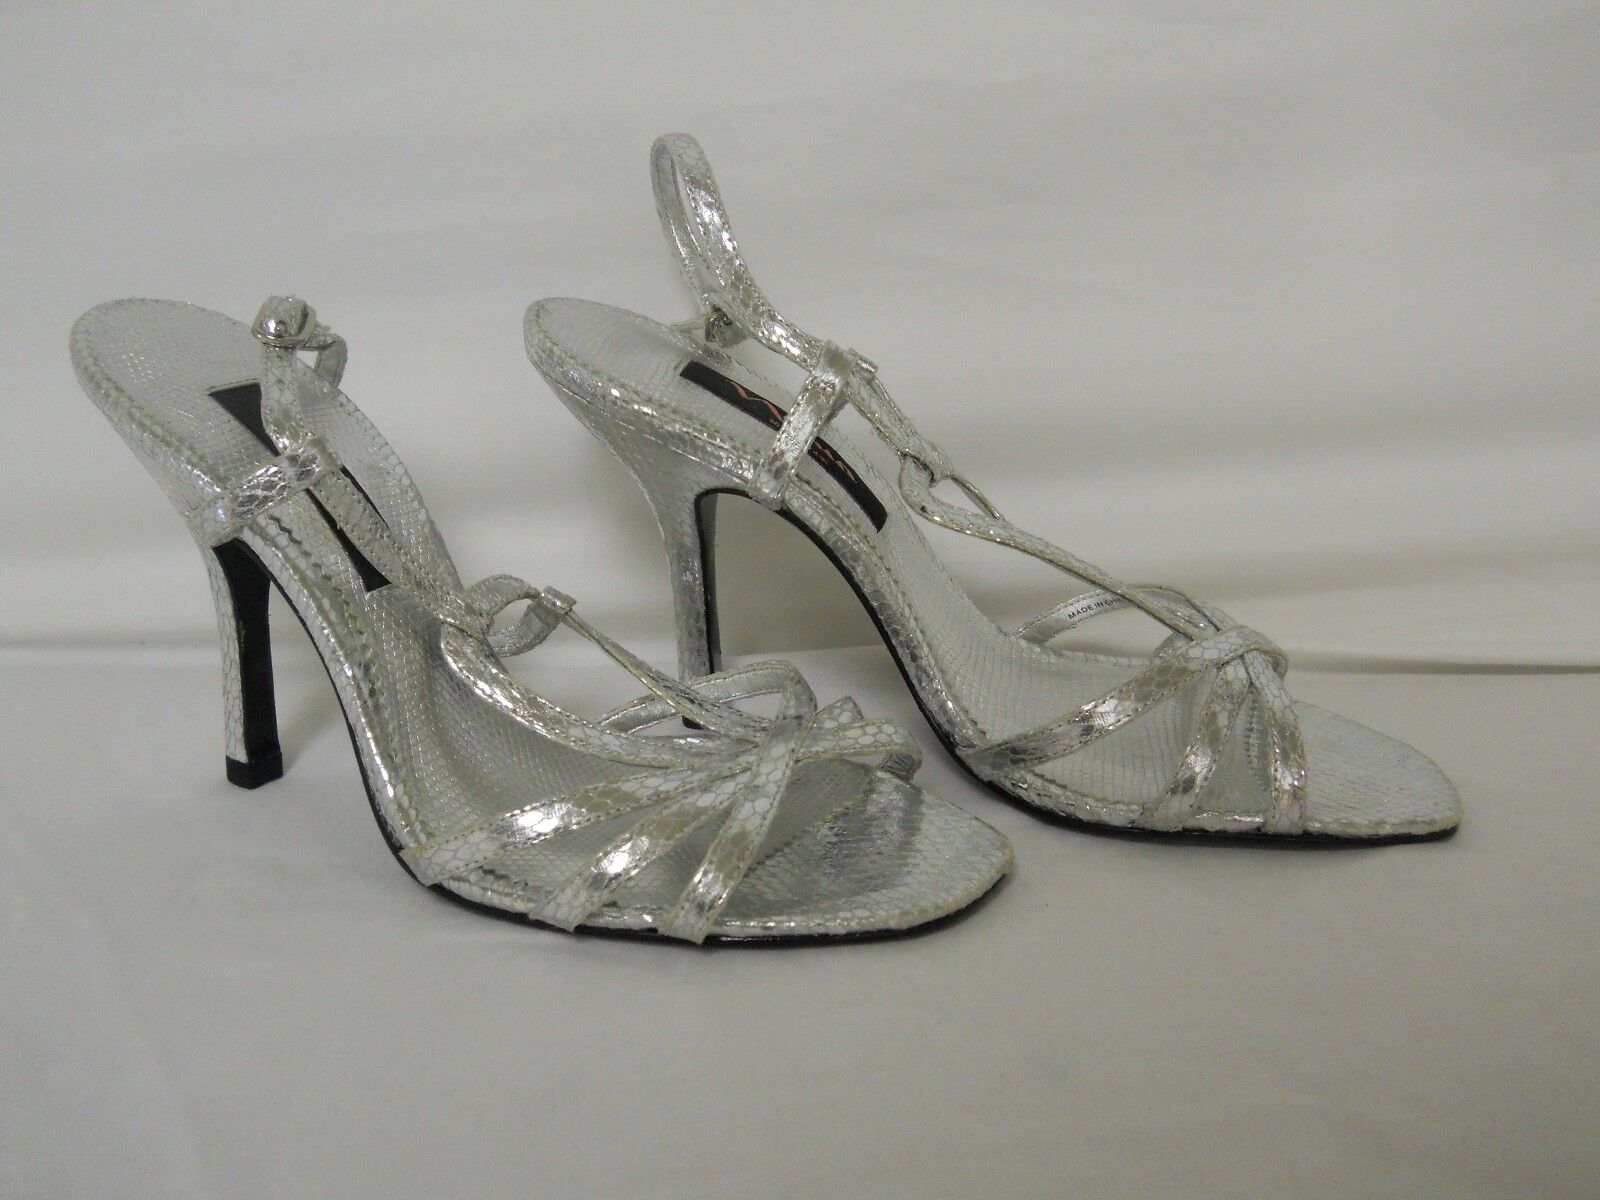 Nina New Womens Silver Sandals Sandals Sandals 6.5 M shoes 7ca9e6